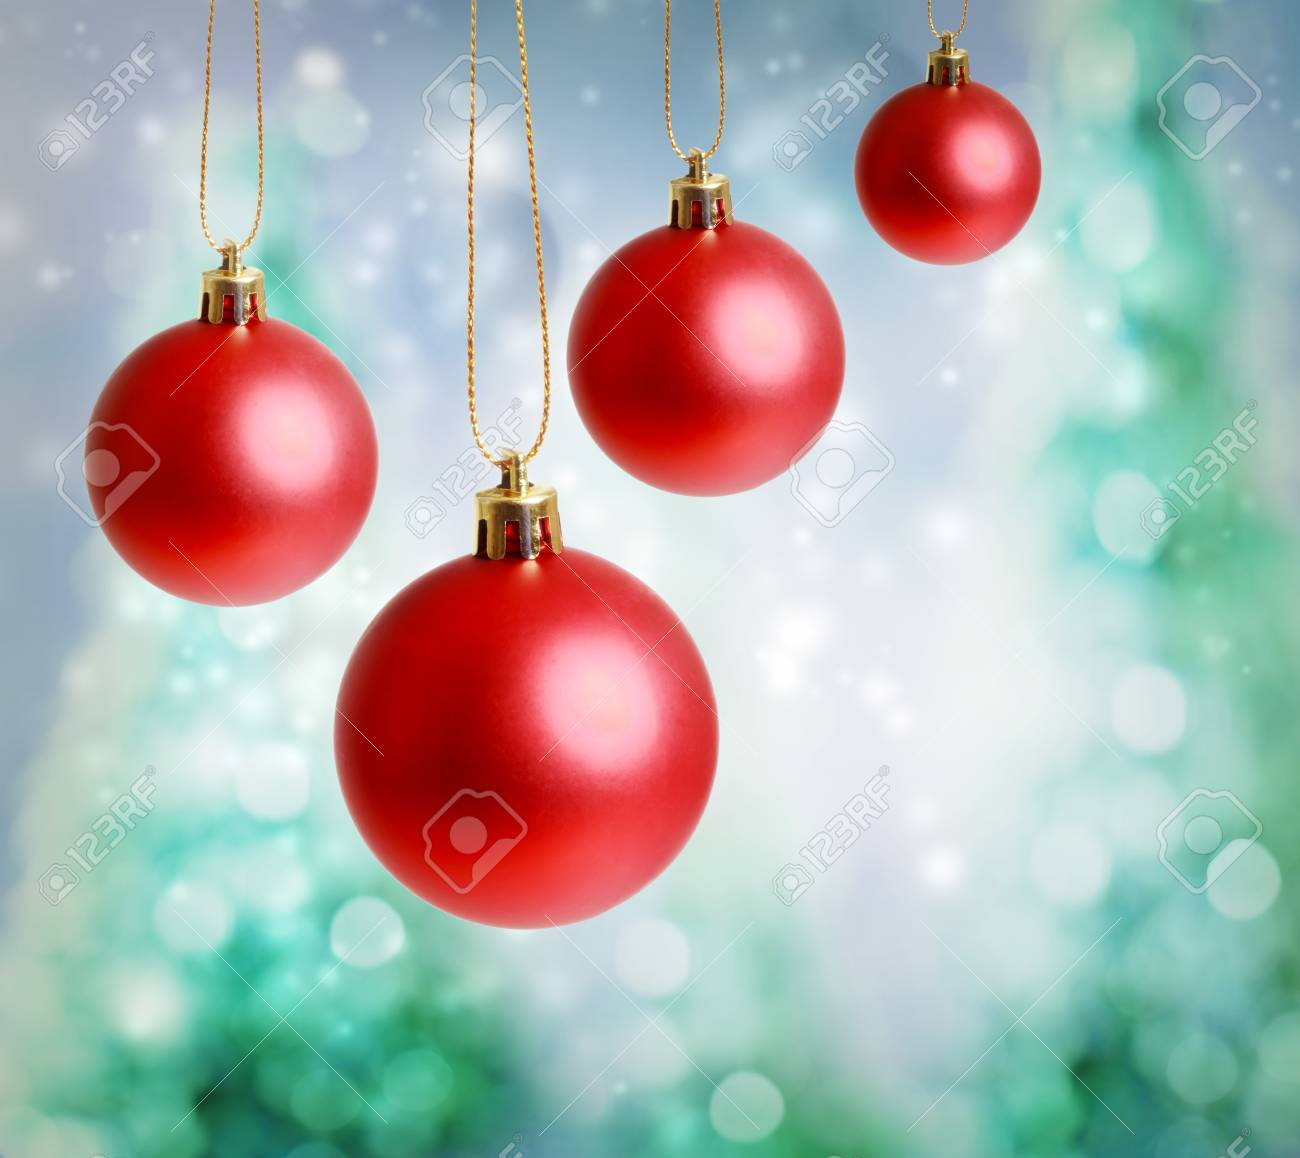 Red Christmas ornaments with green-blue Christmas tree lights background Stock Photo - 16630429